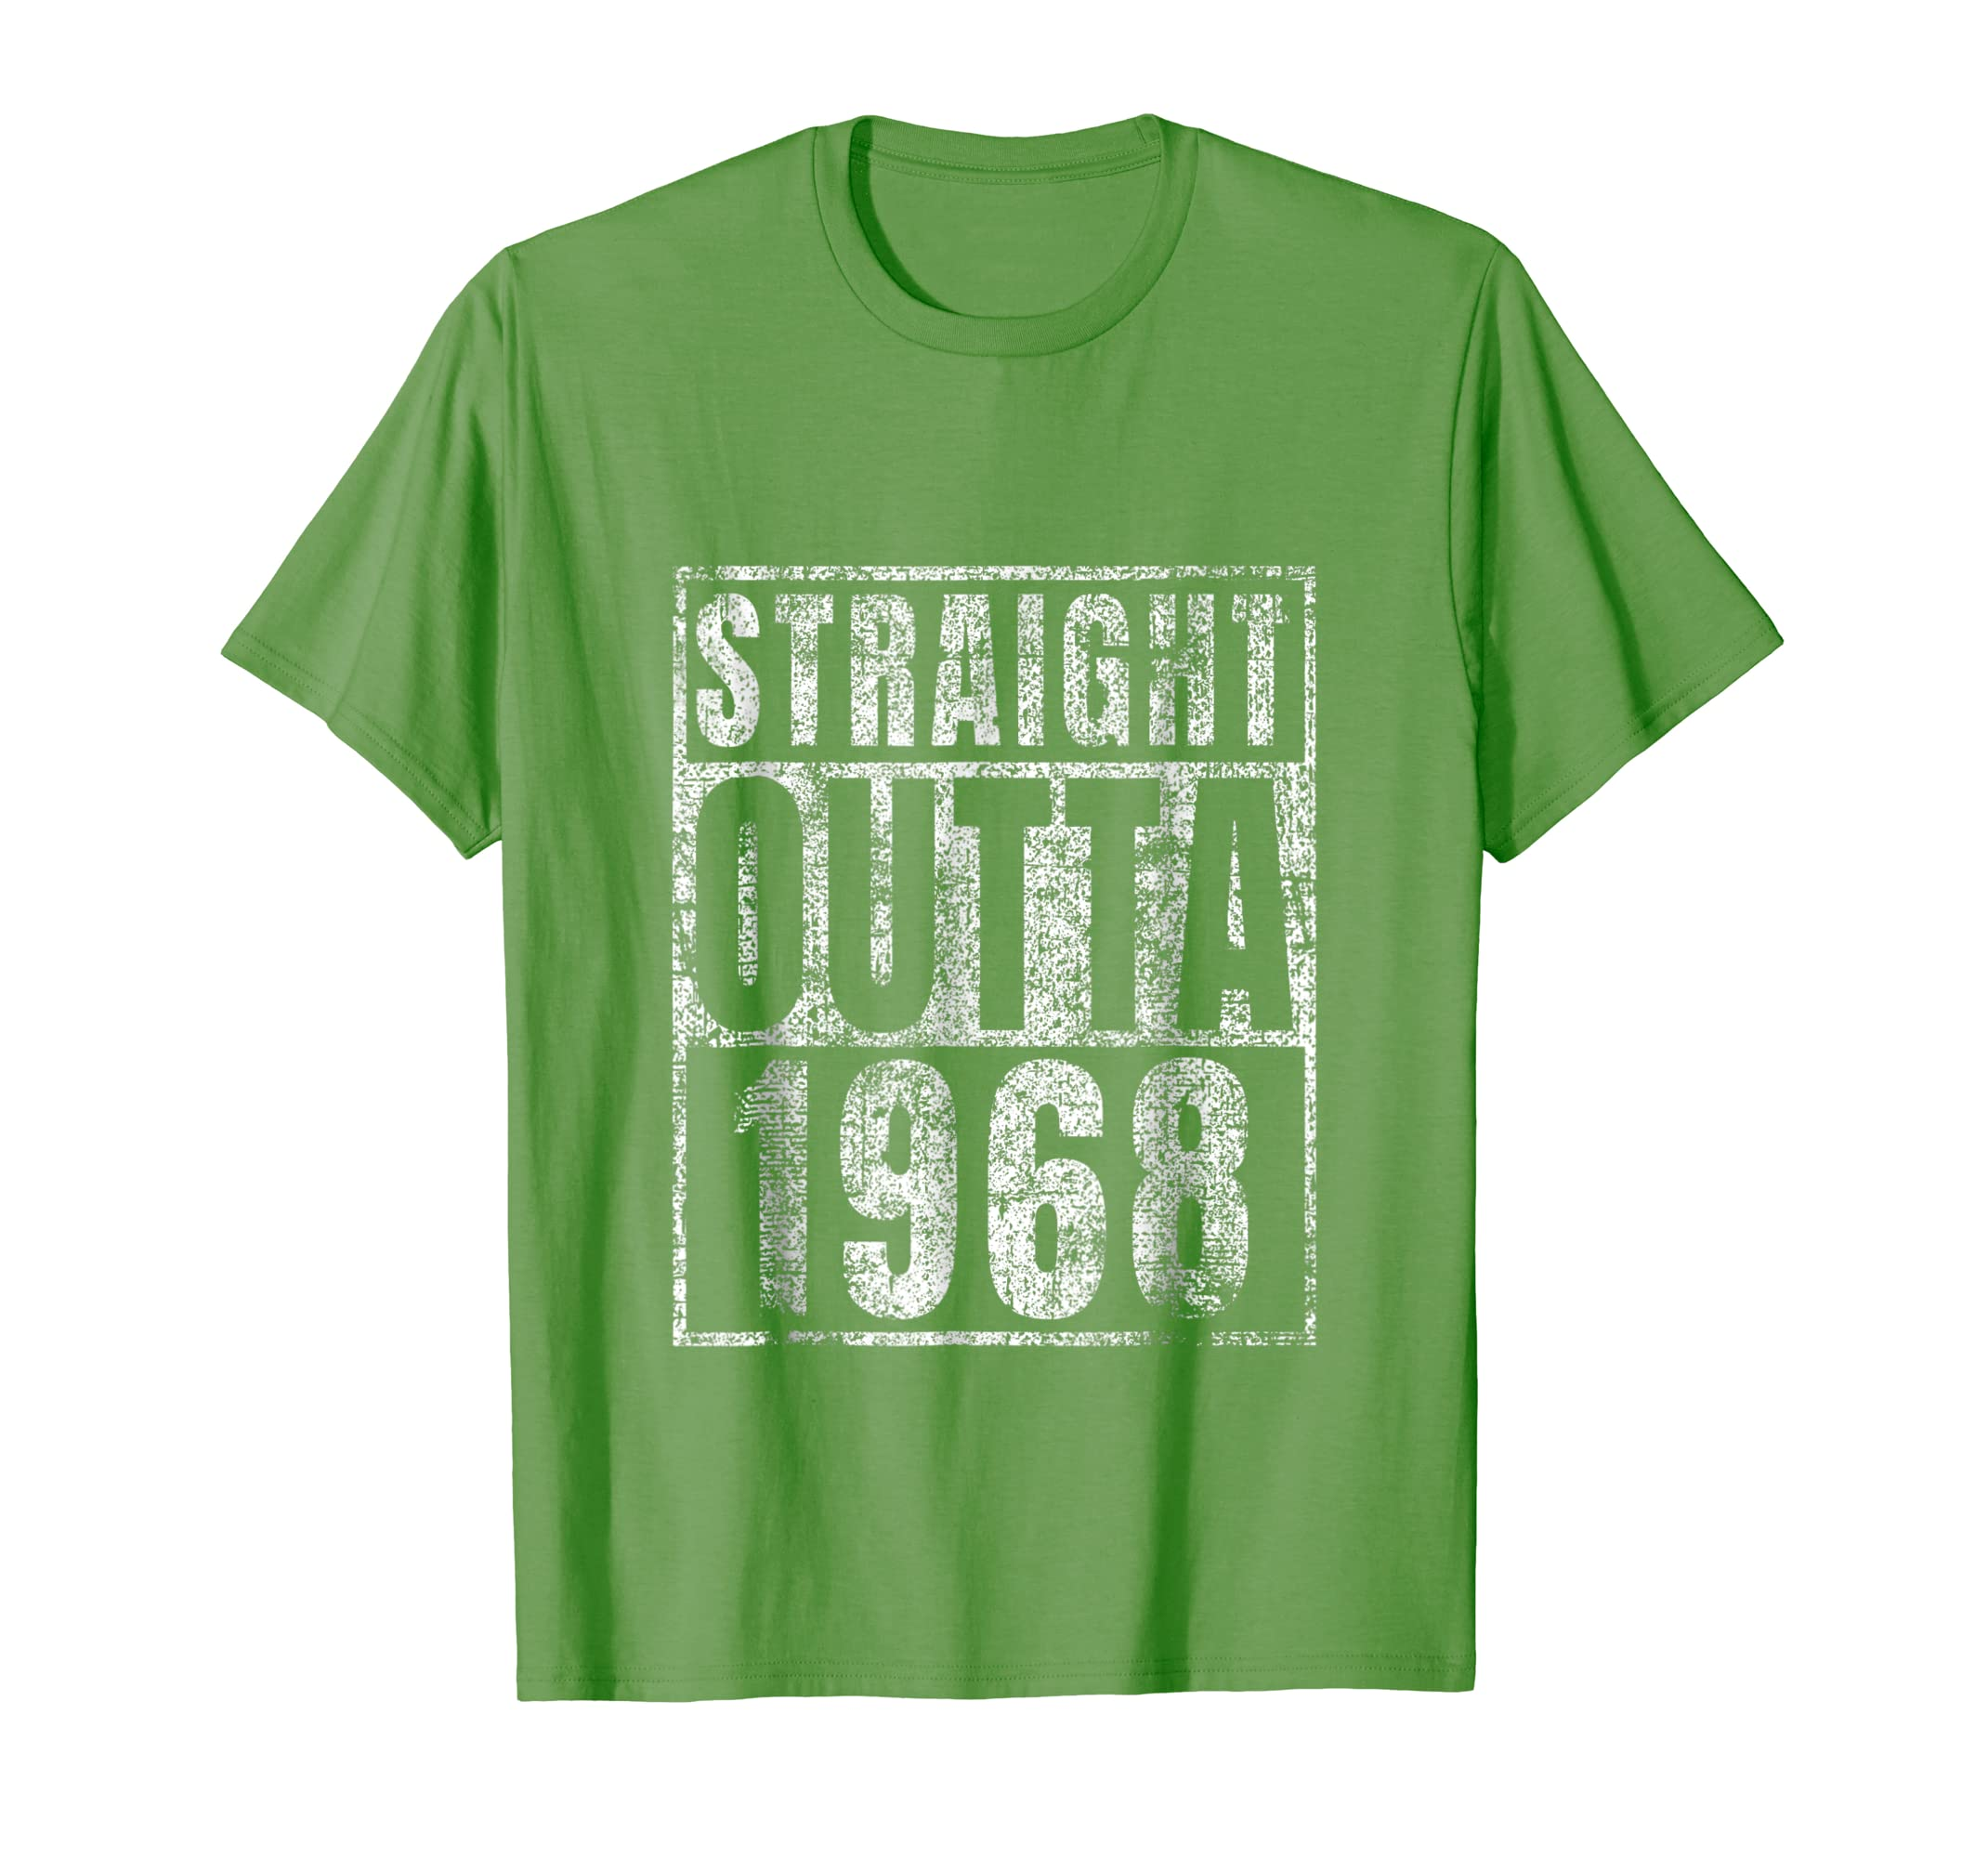 Straight Outta 1968 T Shirt 50th Birthday Gift Men Him Funny Colonhue